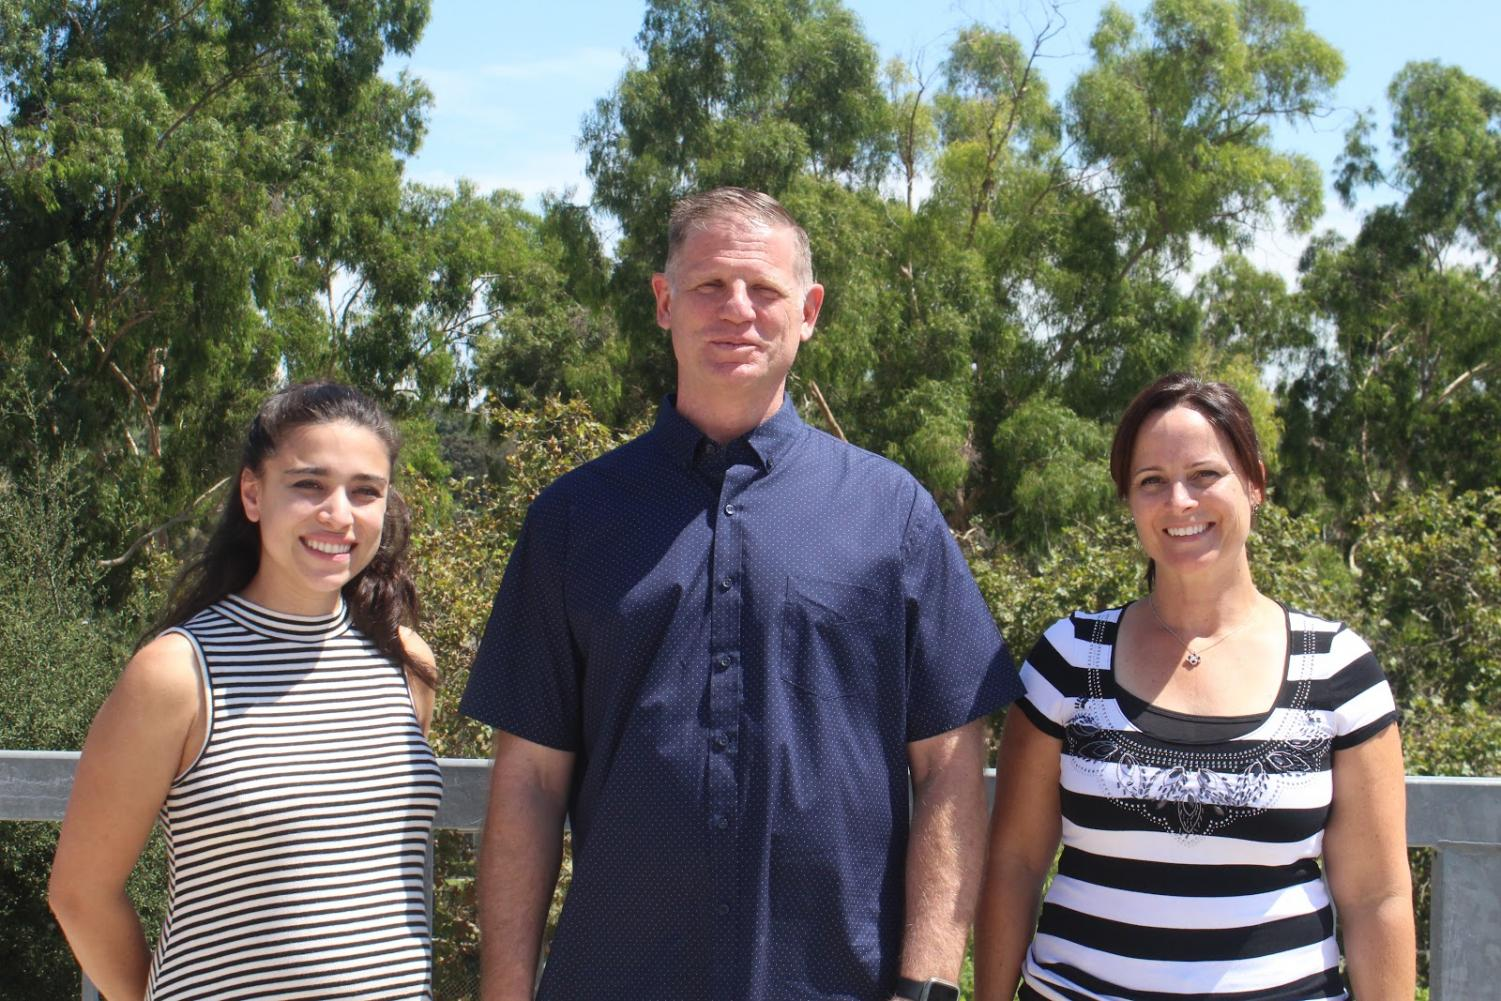 Among the seven new staff members starting their first year at DBHS are, from left, Autistic Spectrum Disorder Intermediate teacher Tiffany Brito, Chemistry Through Forensics teacher Kenneth Carlson and school psychologist Inger Turner.